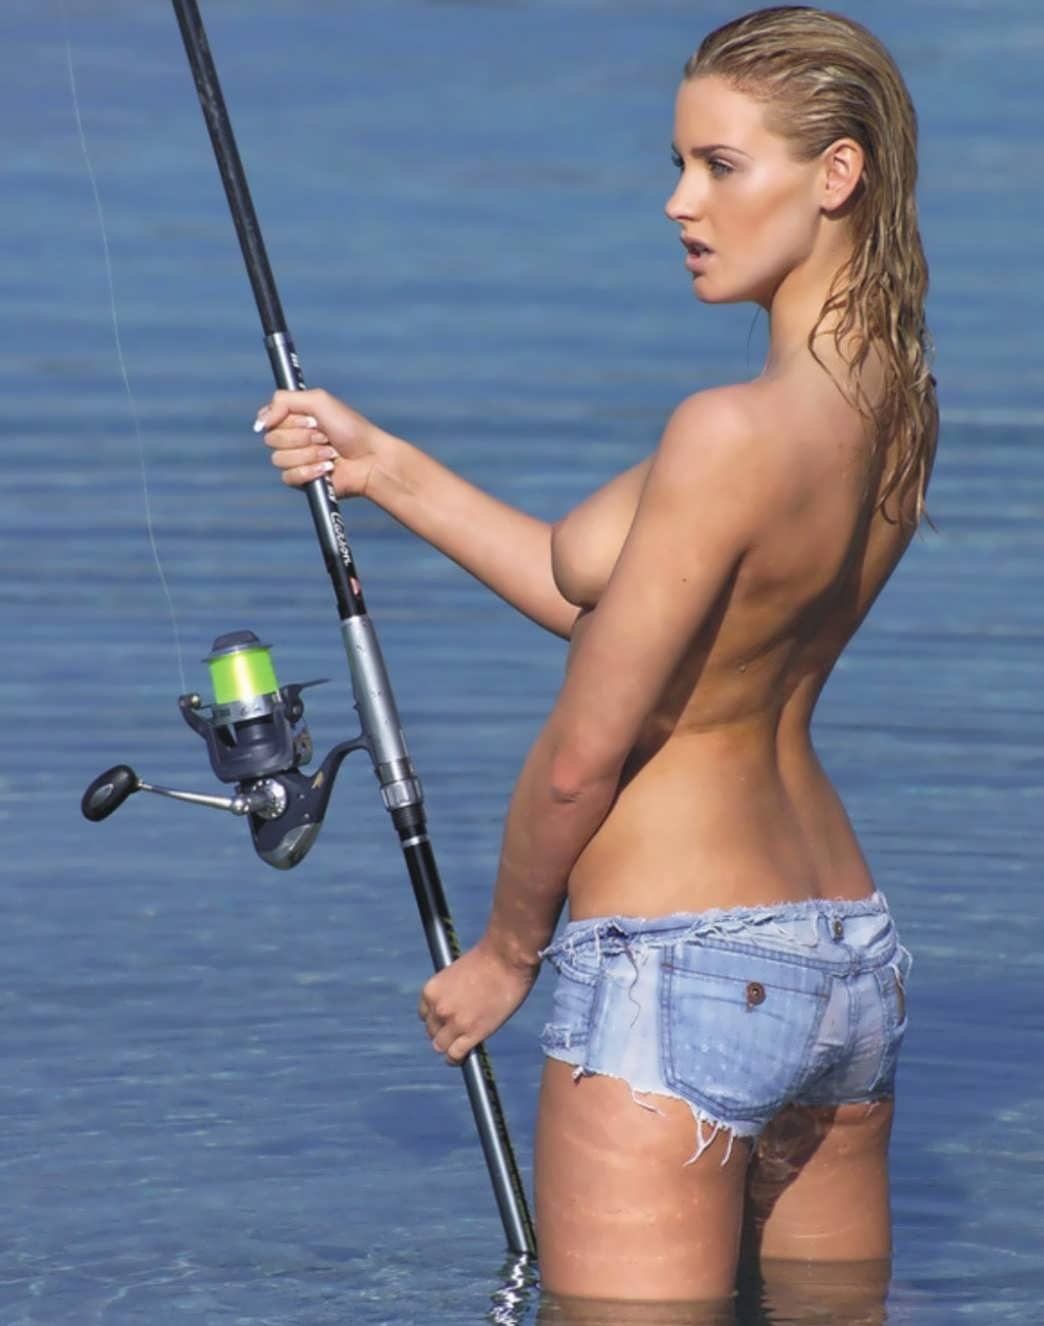 Myspace sexy girl fishing layout — photo 3